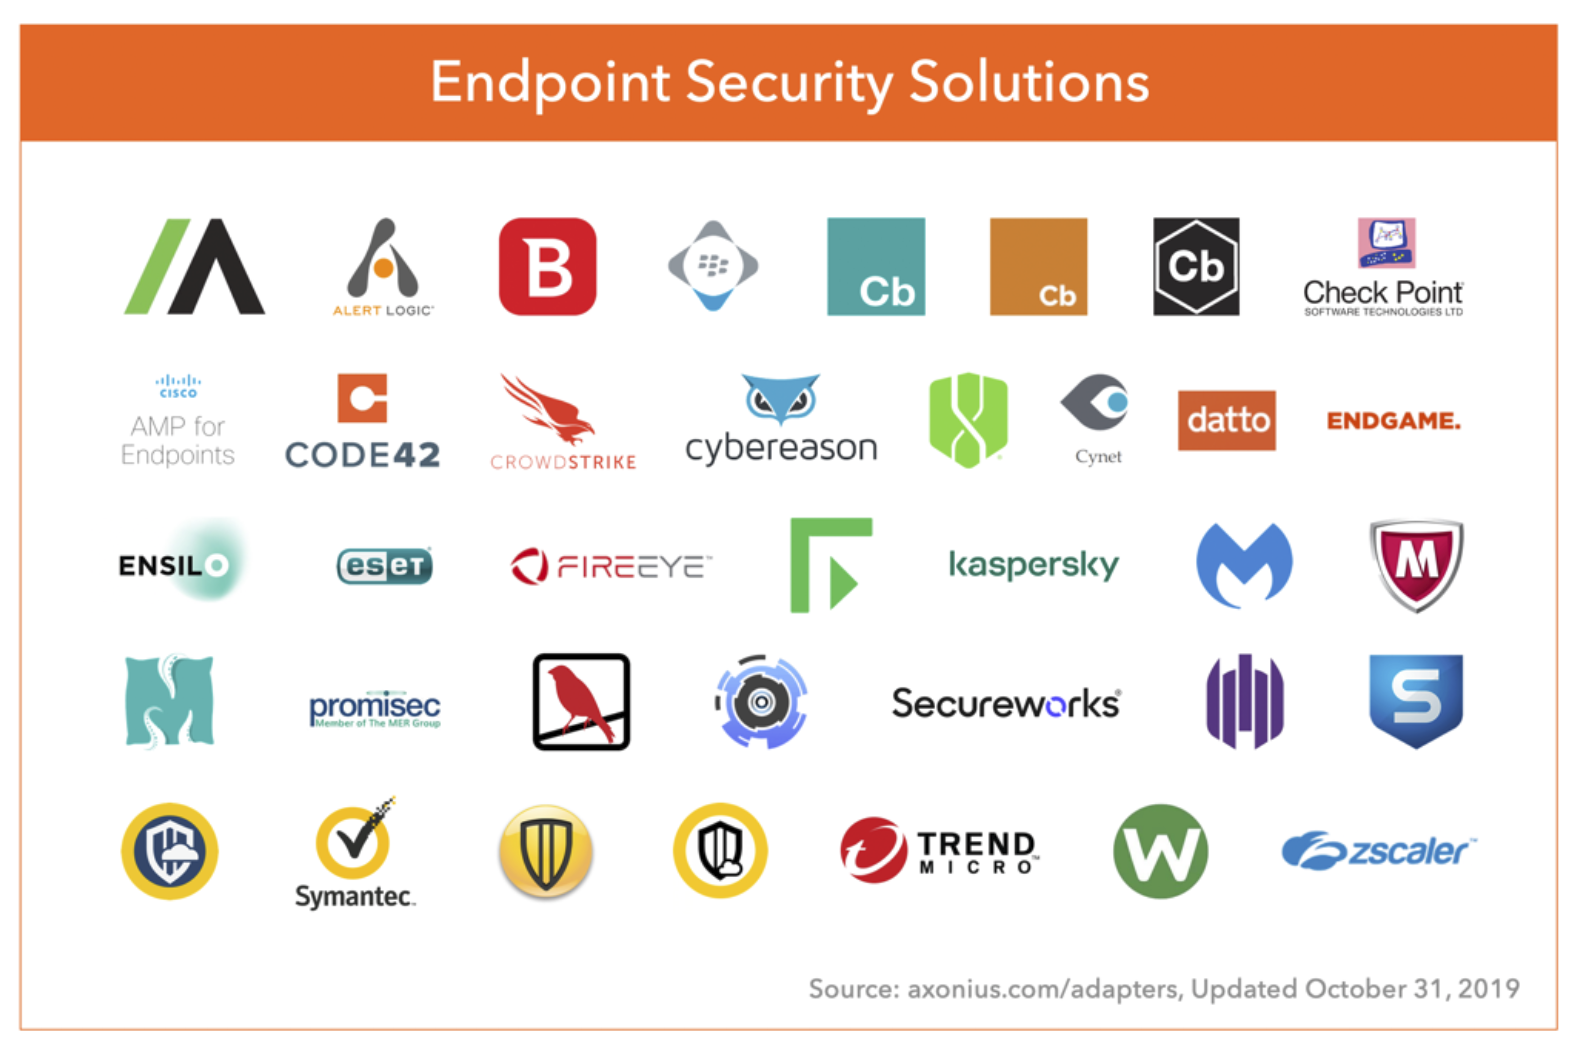 Asset Management and Endpoint Protection